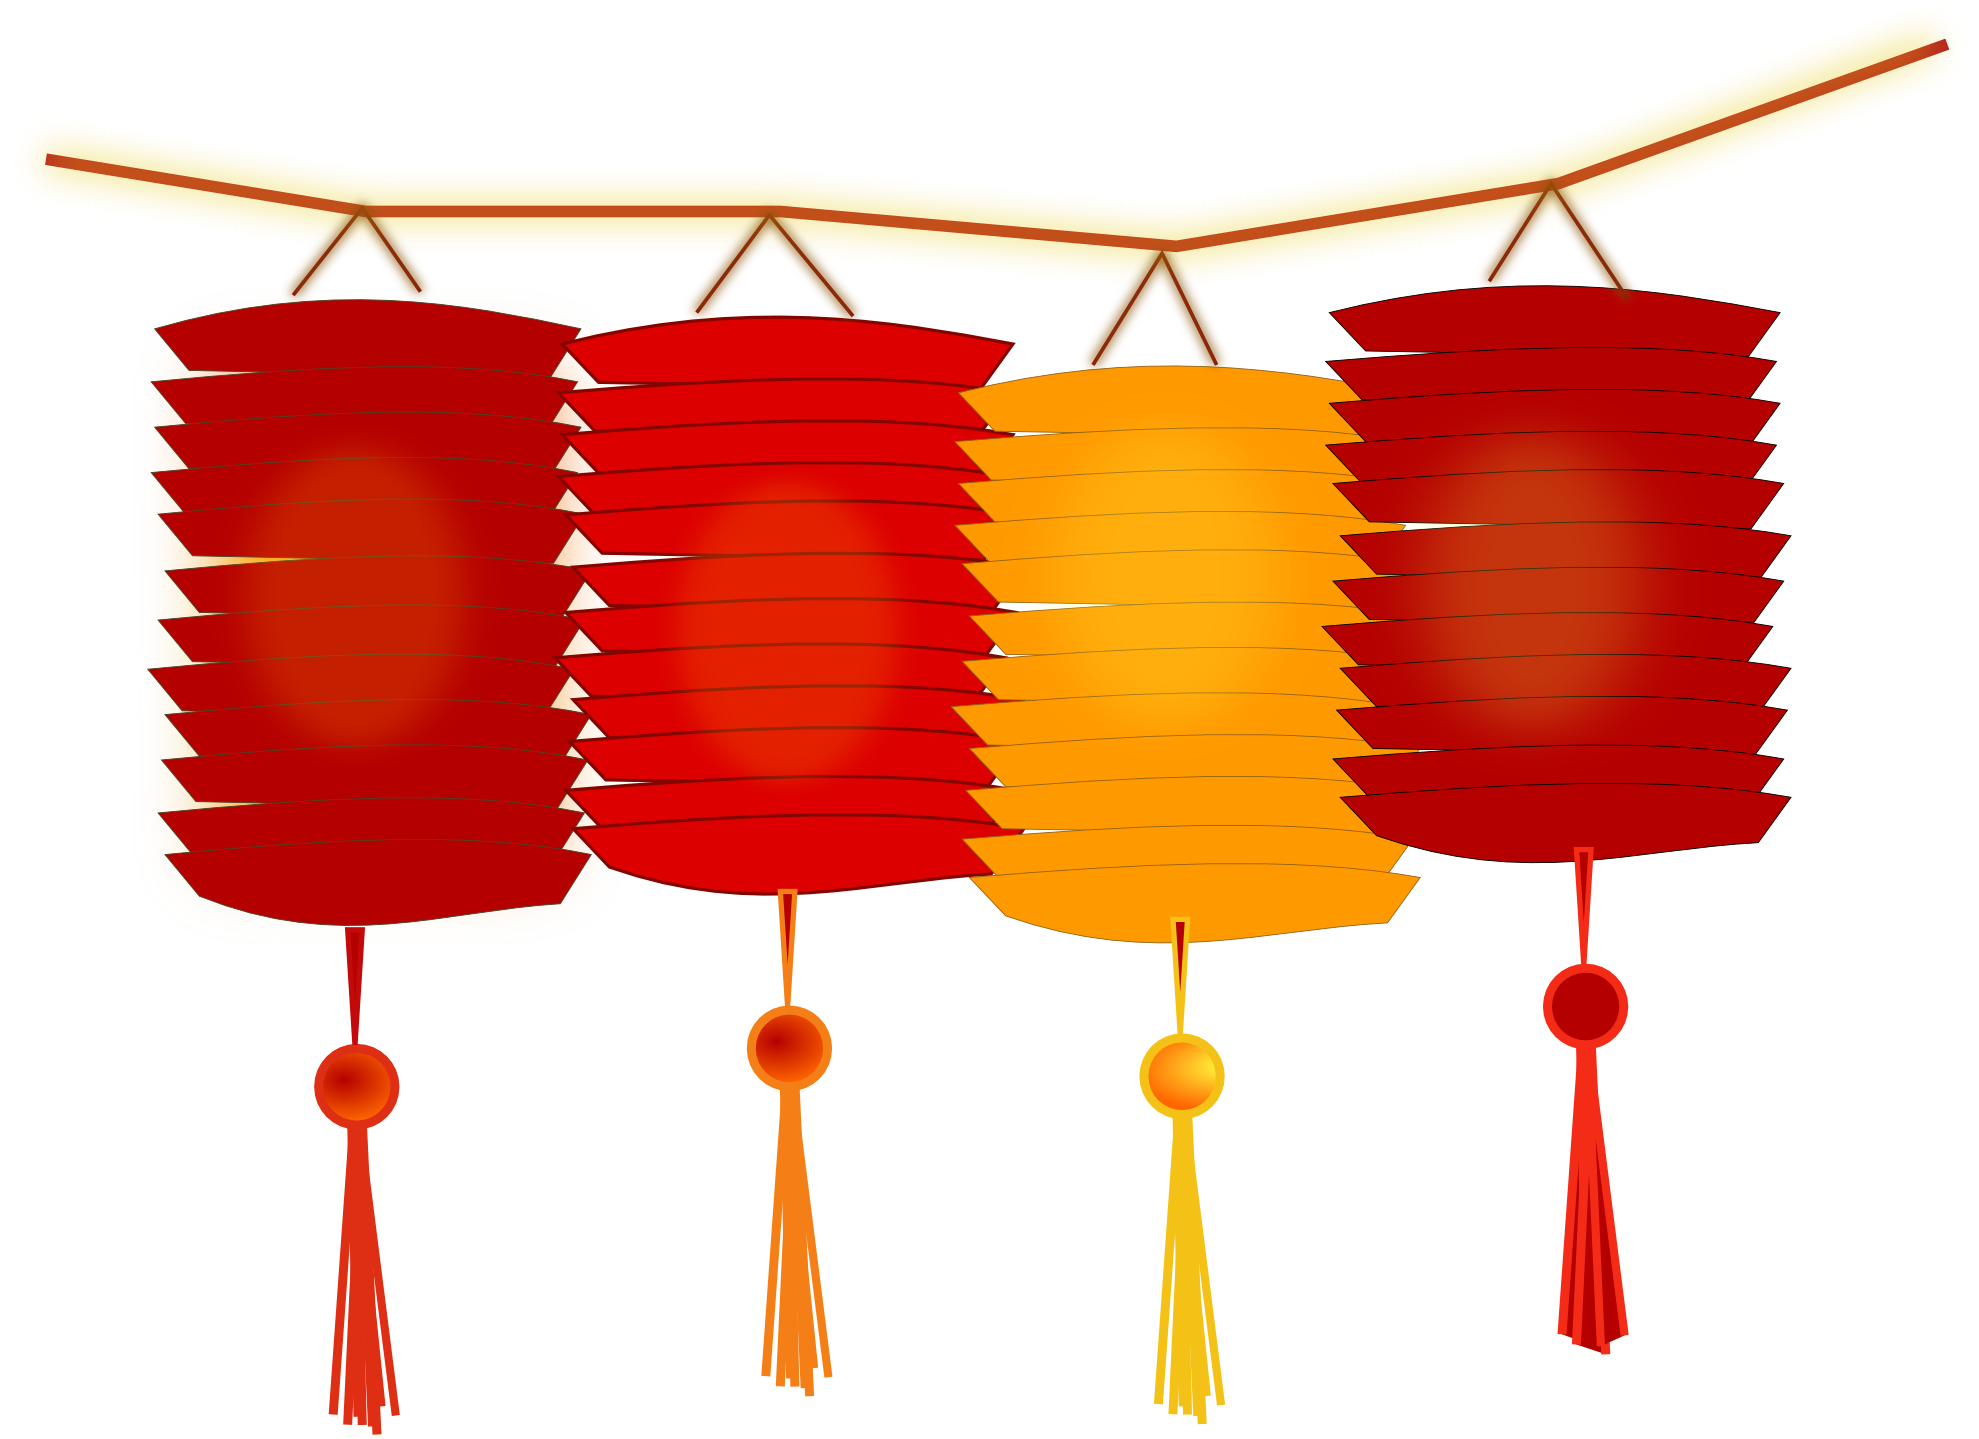 Lantern Cliparts | Free download best Lantern Cliparts on ... for Lamp Clipart Png  104xkb